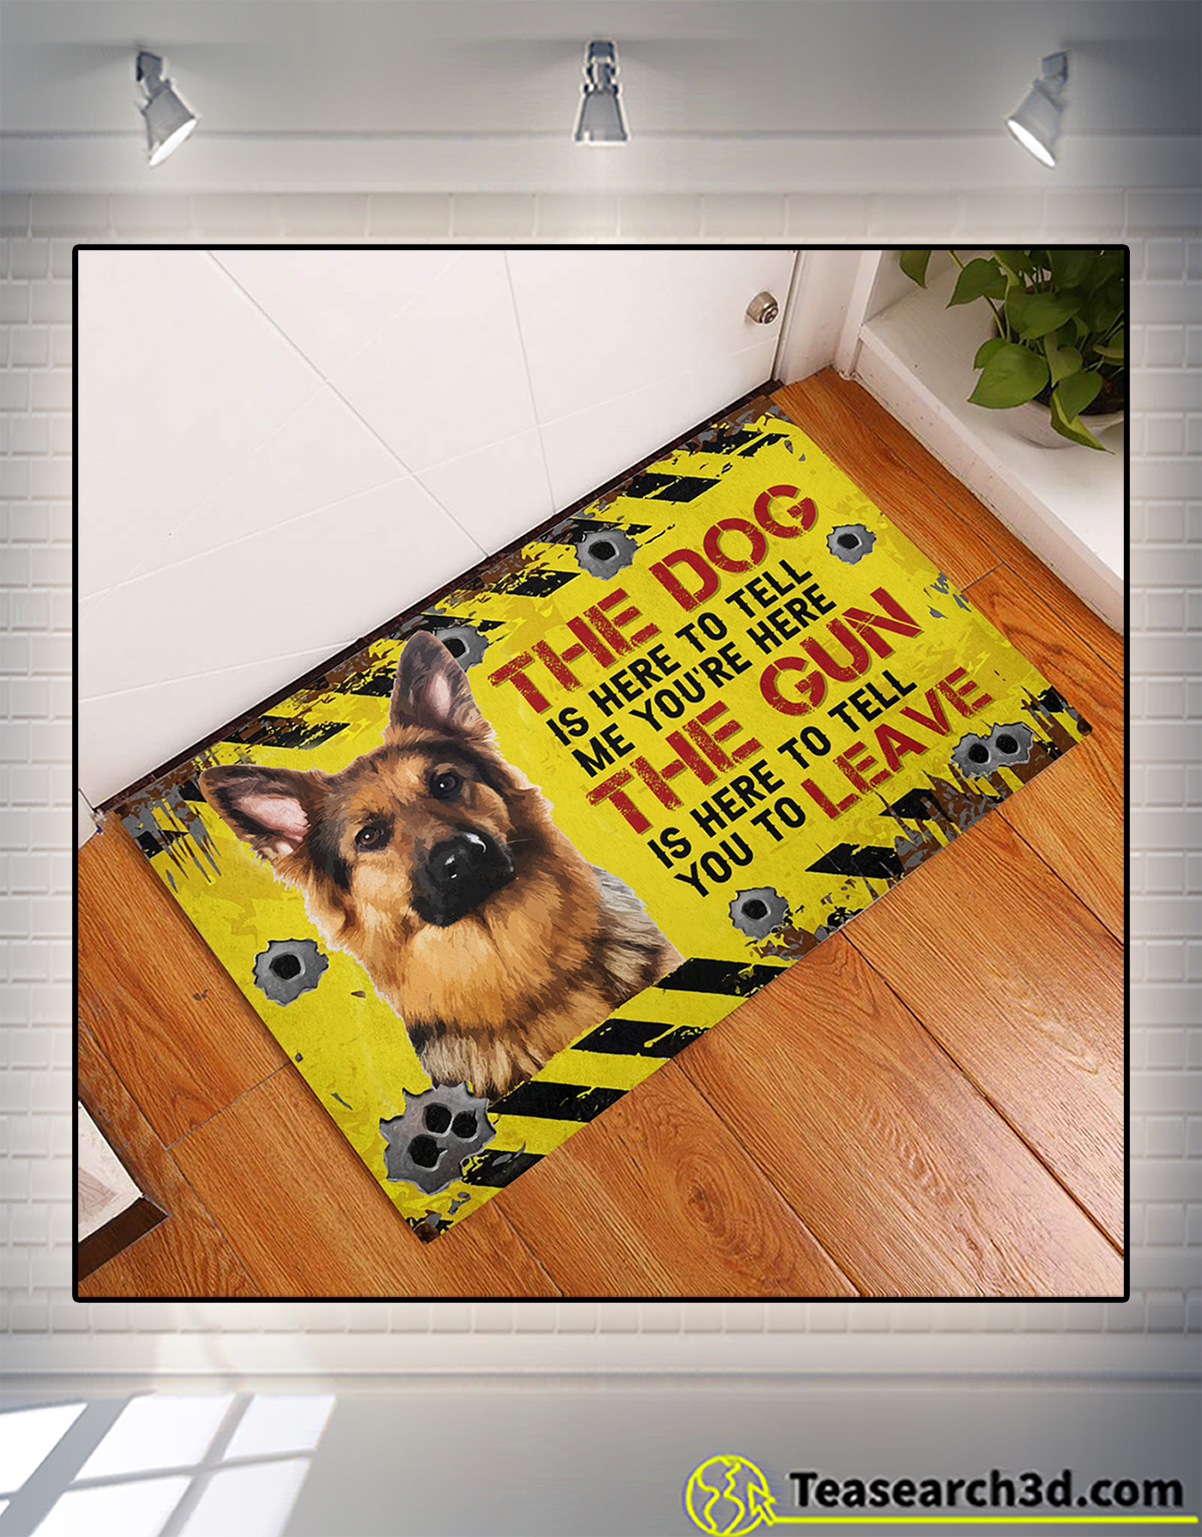 German Shepherd The dog is here to tell me you're here doormat 2